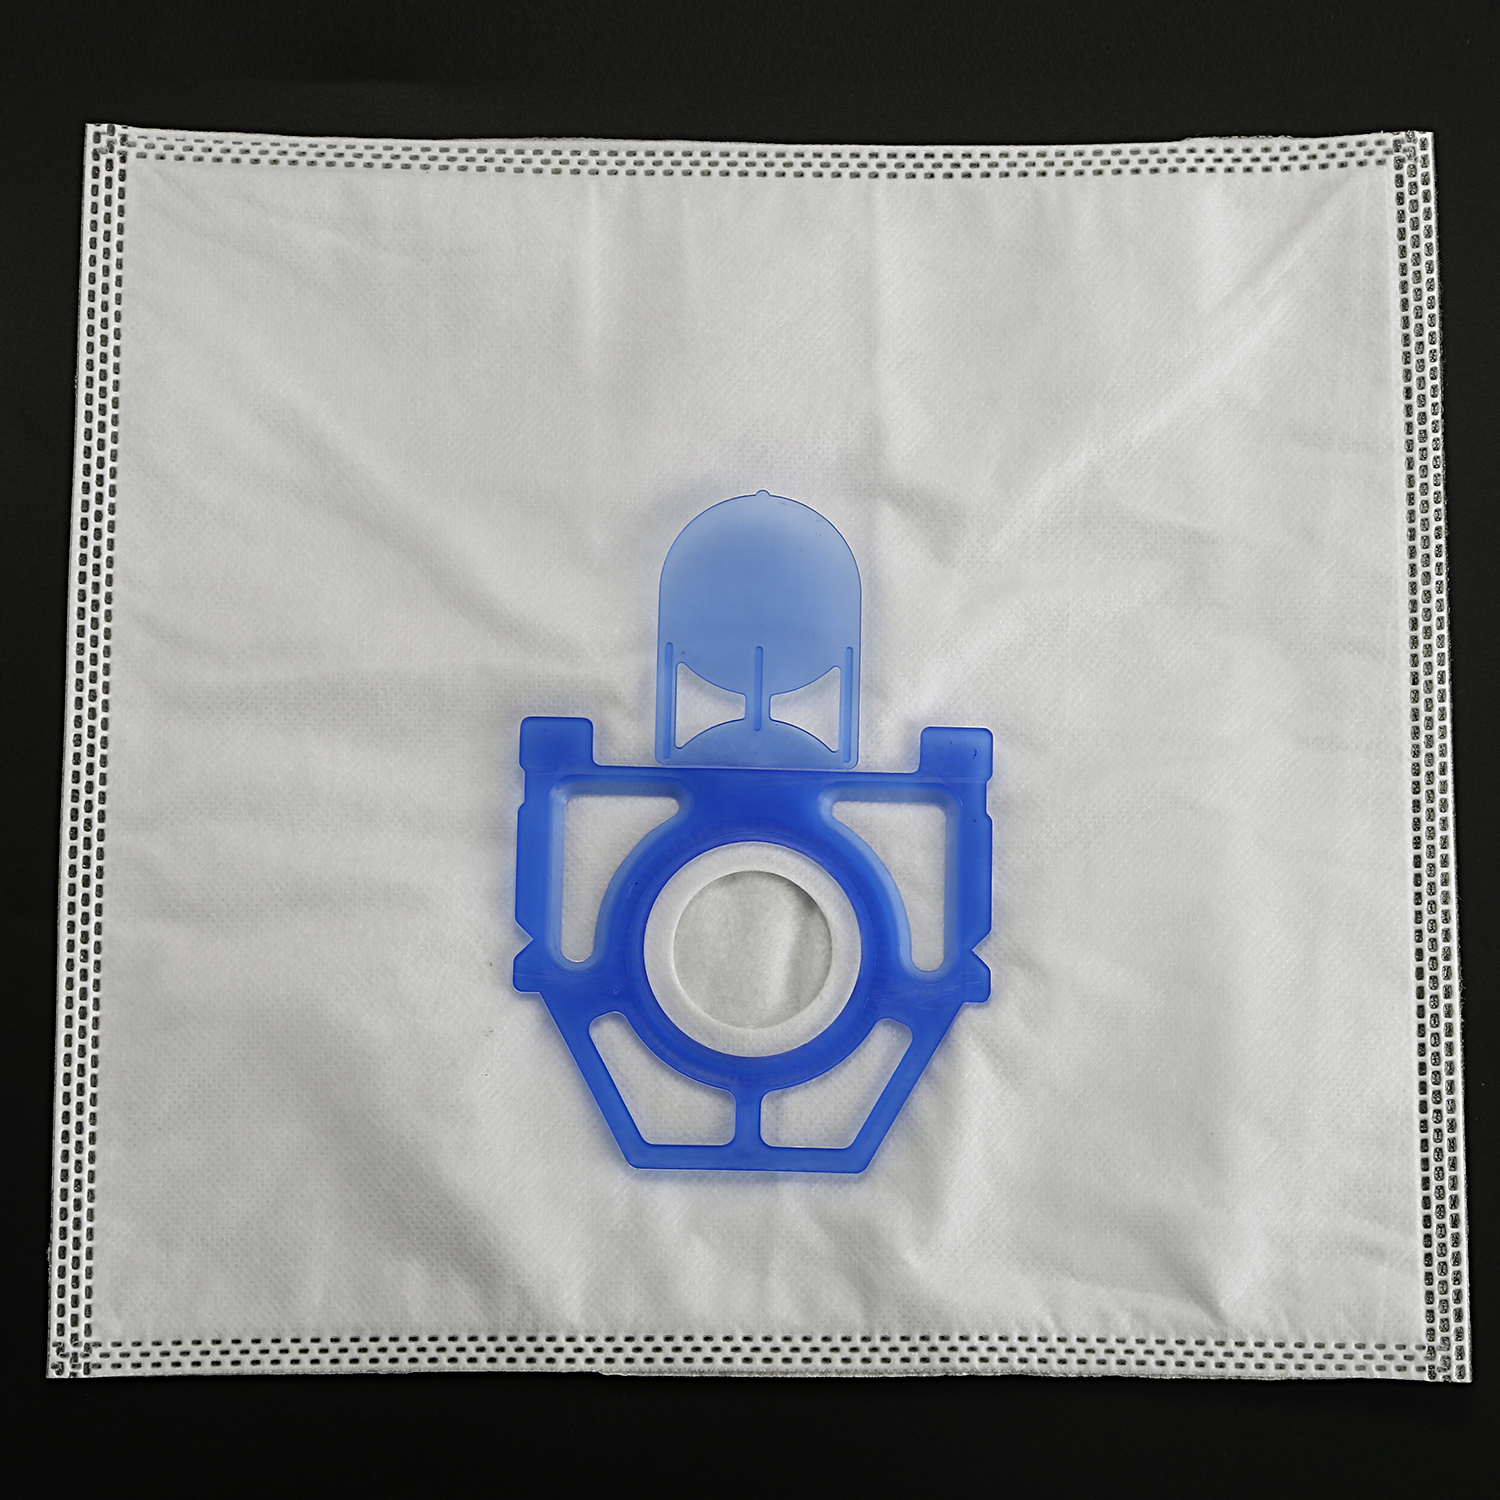 Non-woven fabric dust bag for ZELMER ZVCA100B 49.4000 fit Aquawelt 919.0 st ZVC752 Aquos 829.OSP 819.5 Maxim 3000 Flip 321